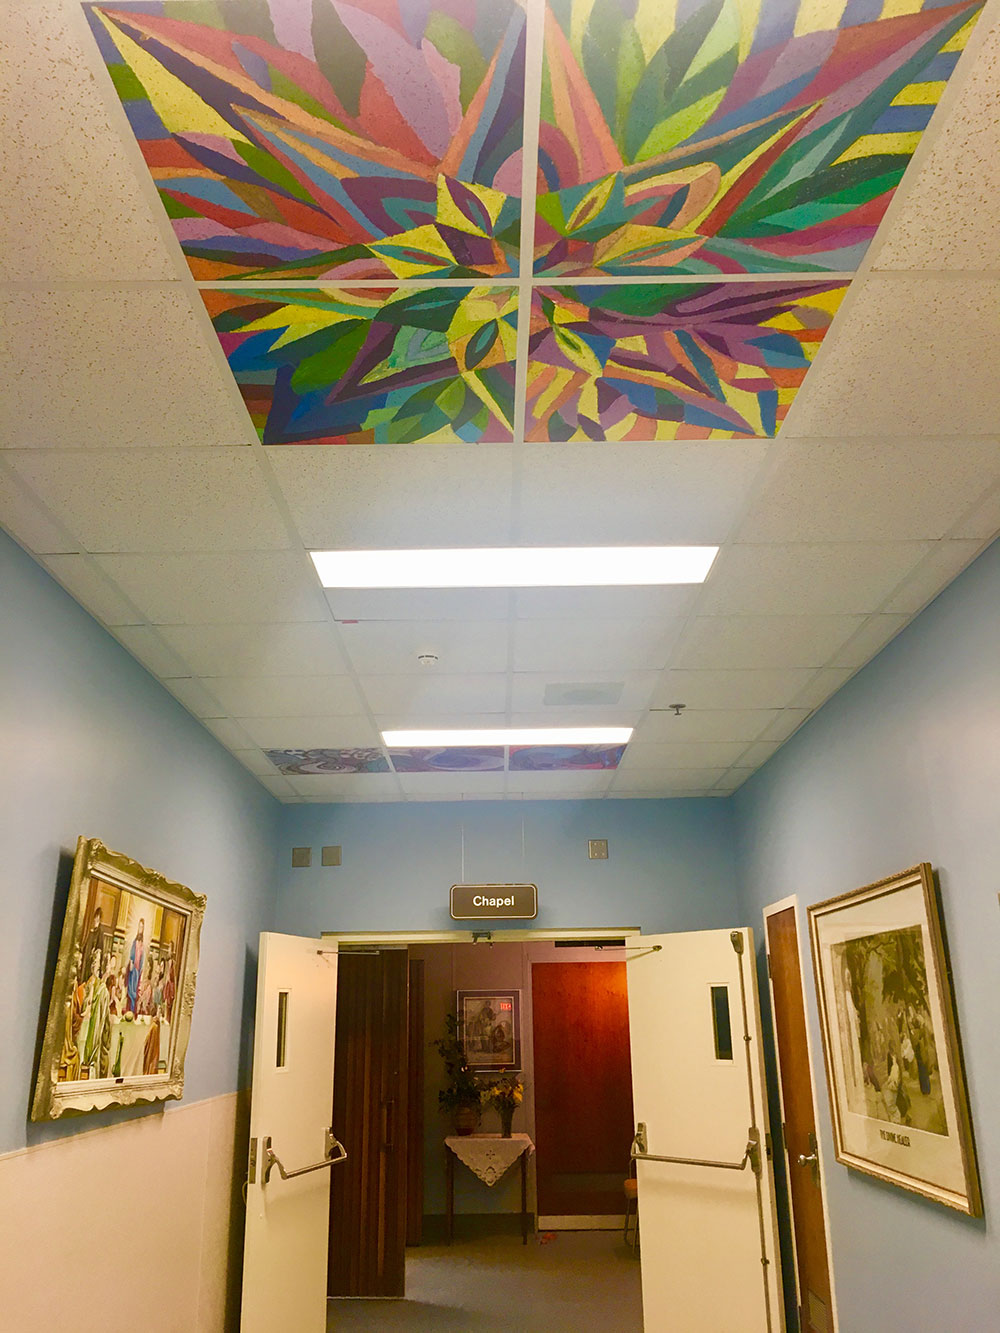 Painted ceiling tiles installed at St Pauls Hospital